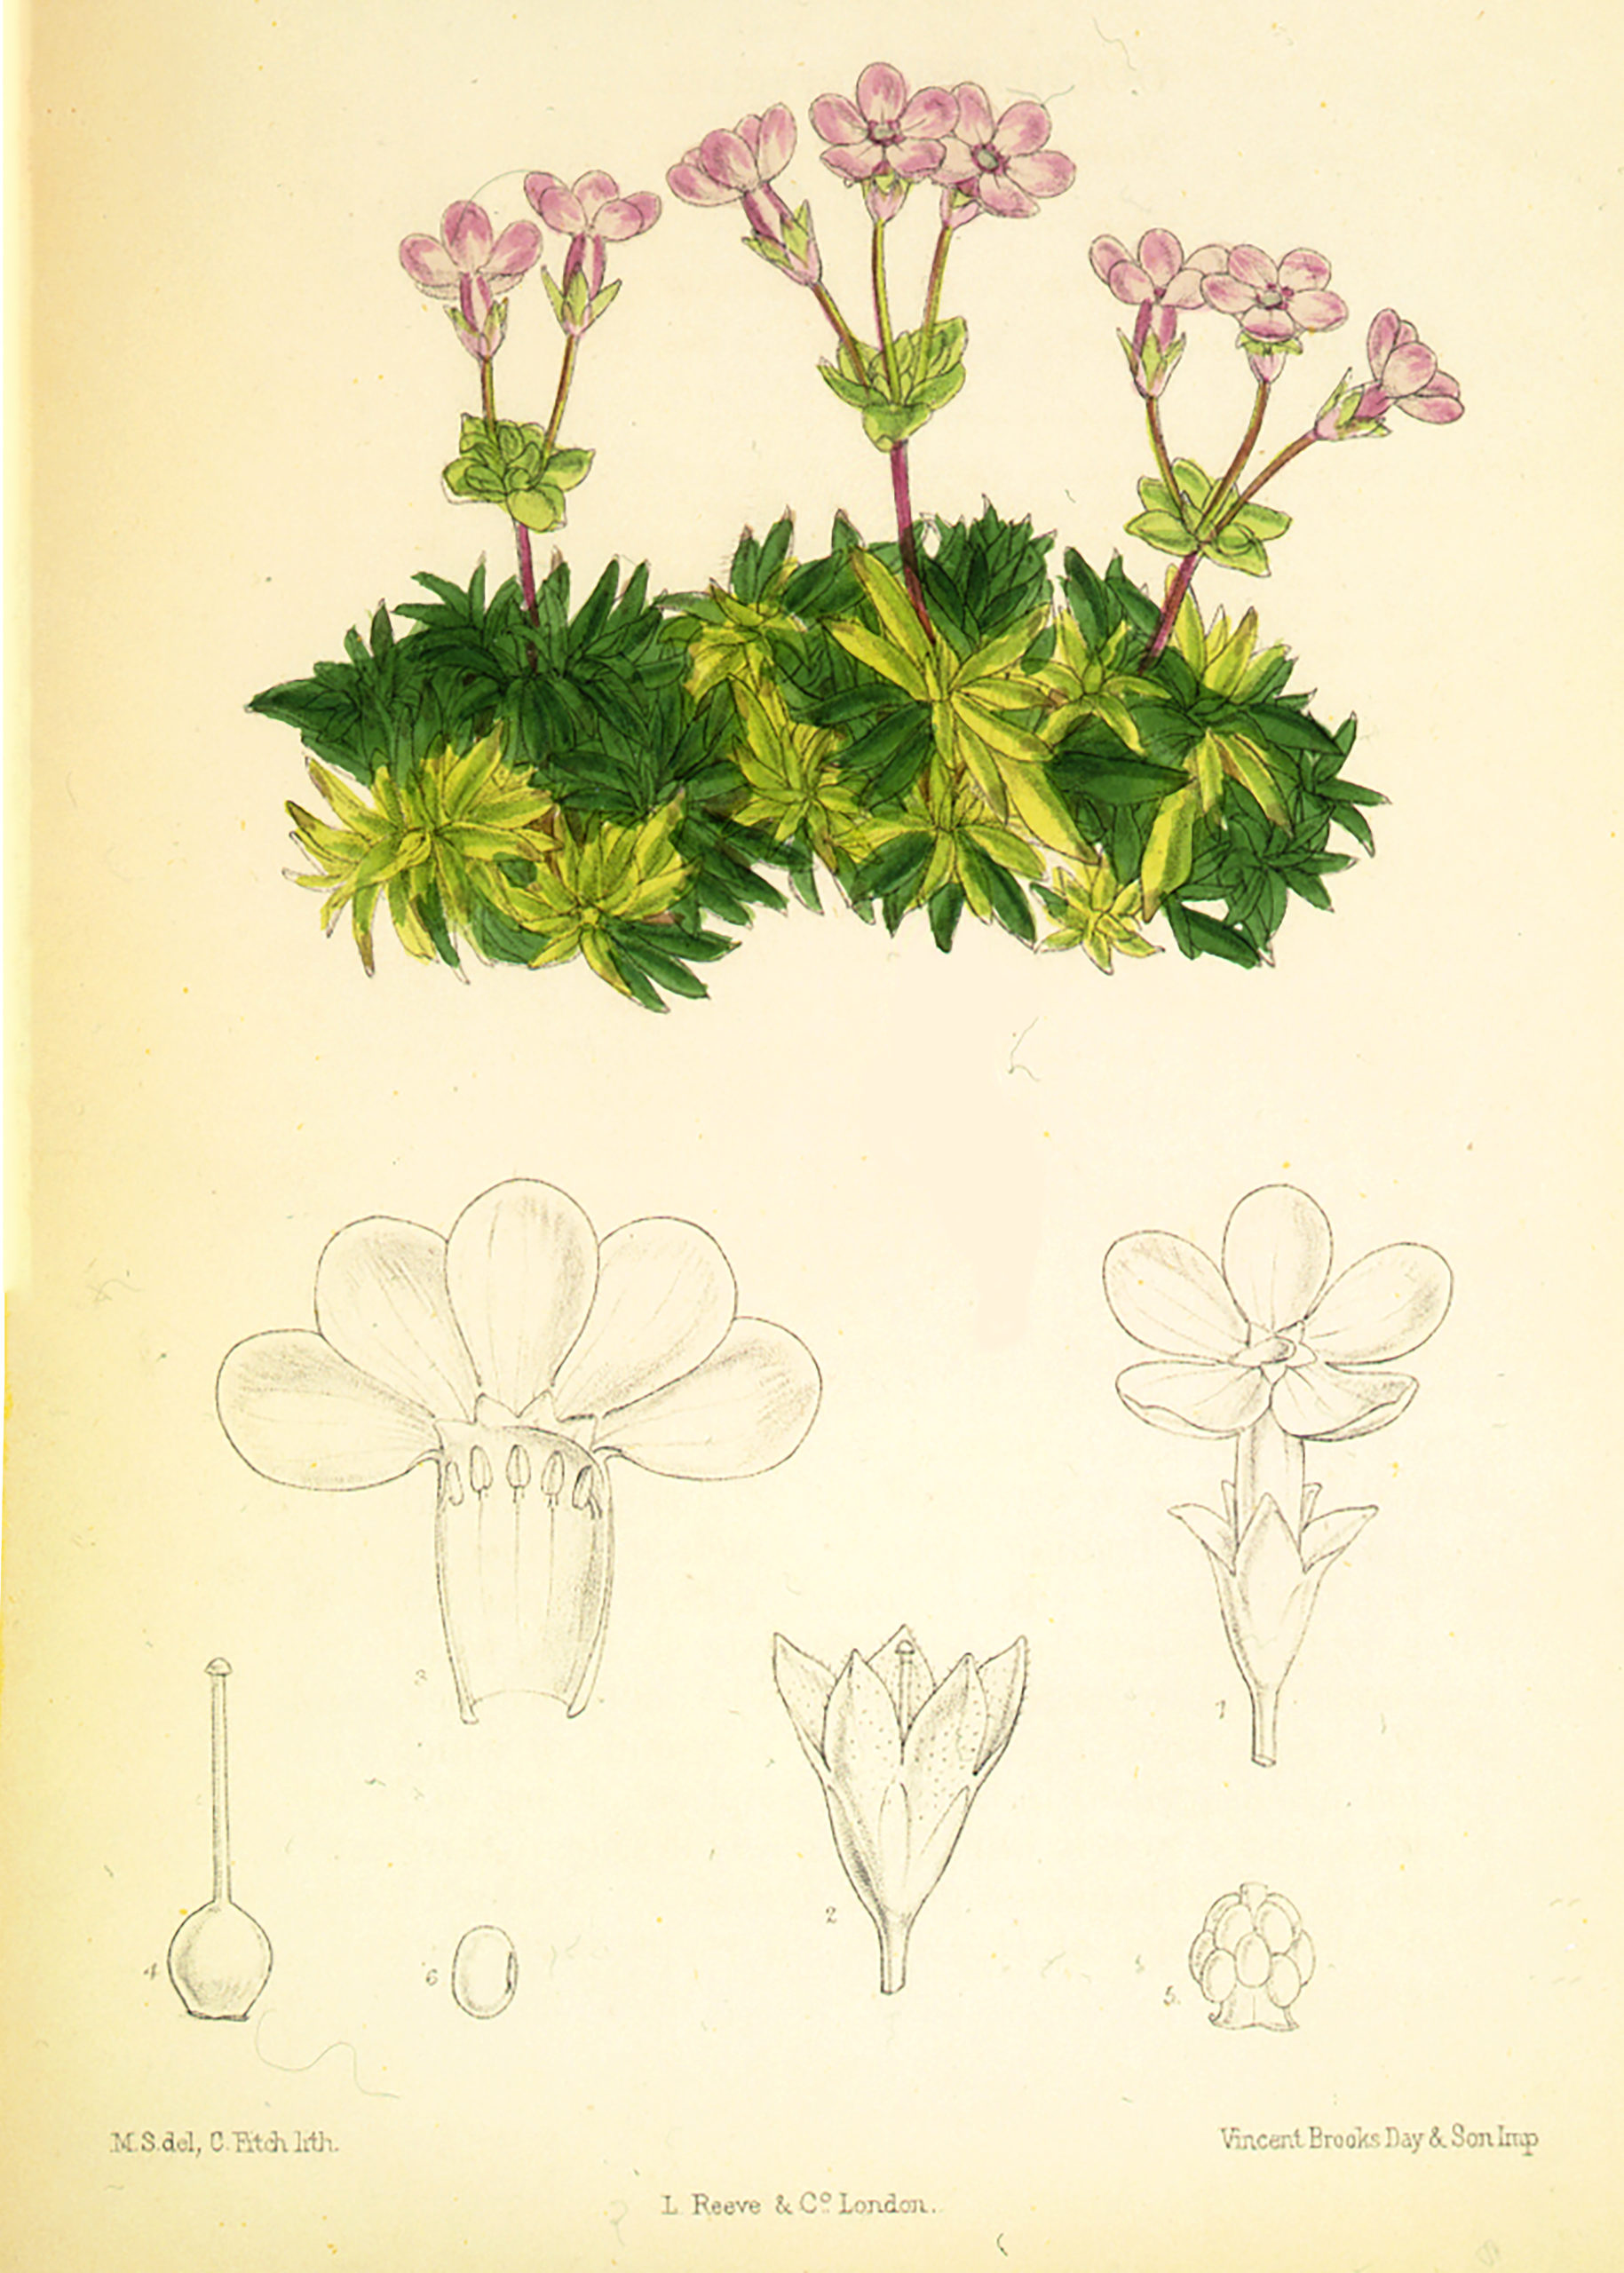 Vintage Botanical Prints - 26 in a series - Douglasia laevigata (1888)